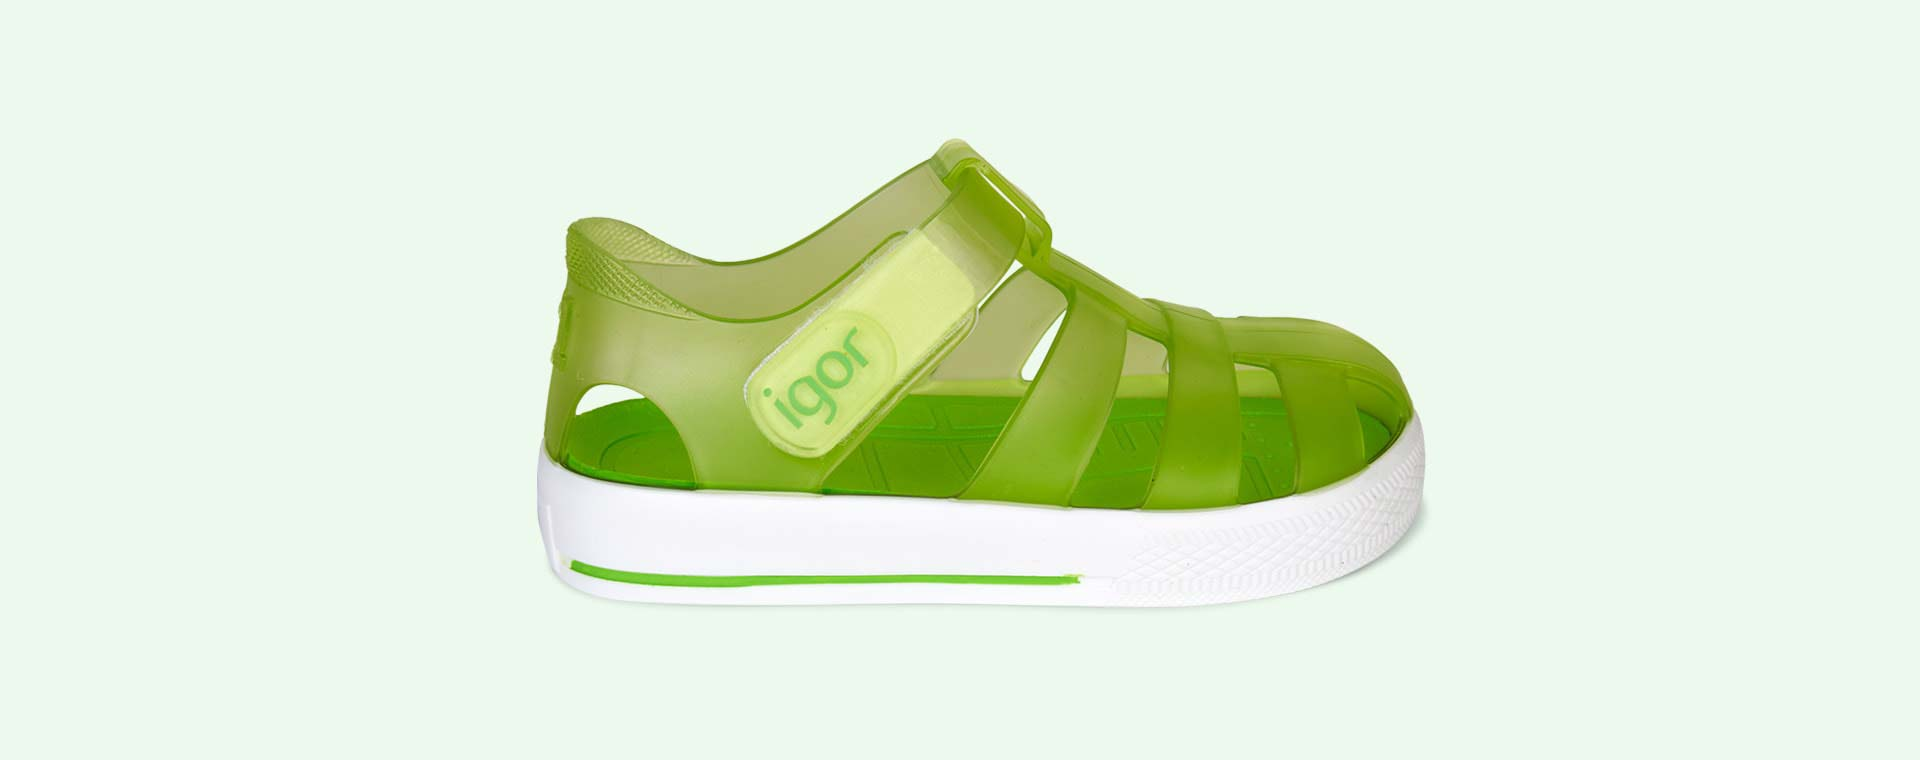 Green igor Star Velcro Jelly shoes